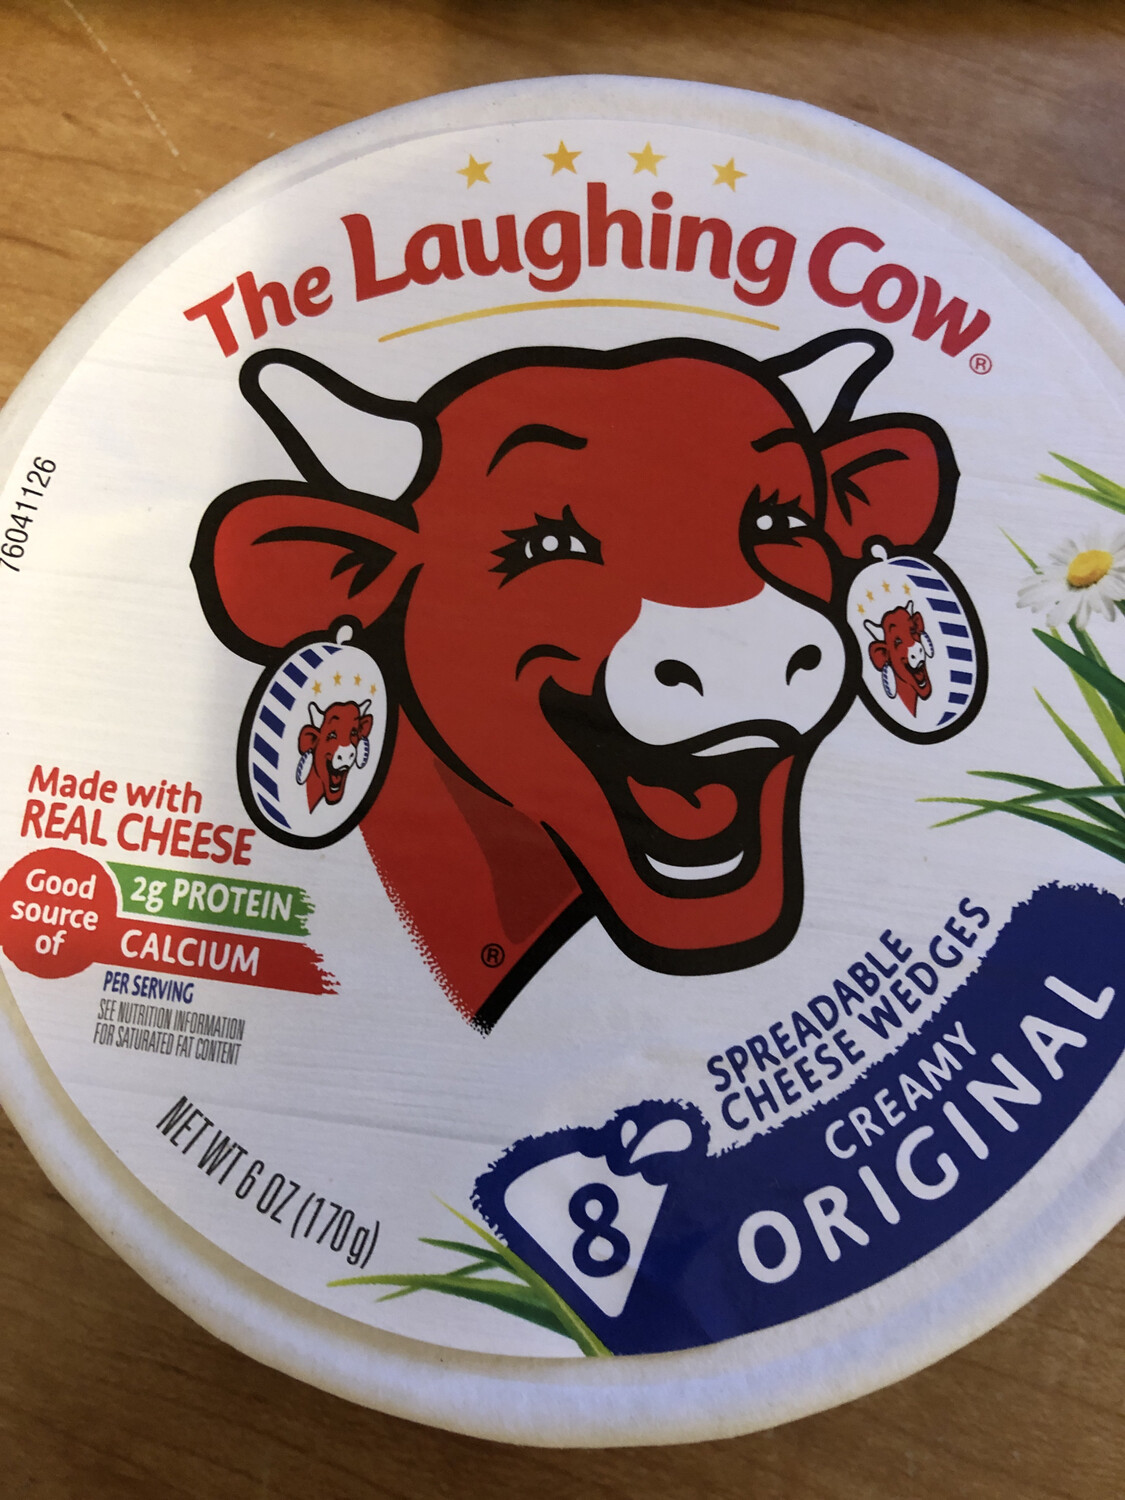 Cheese Spreadable Wedges Original Laughing Cow 6oz.